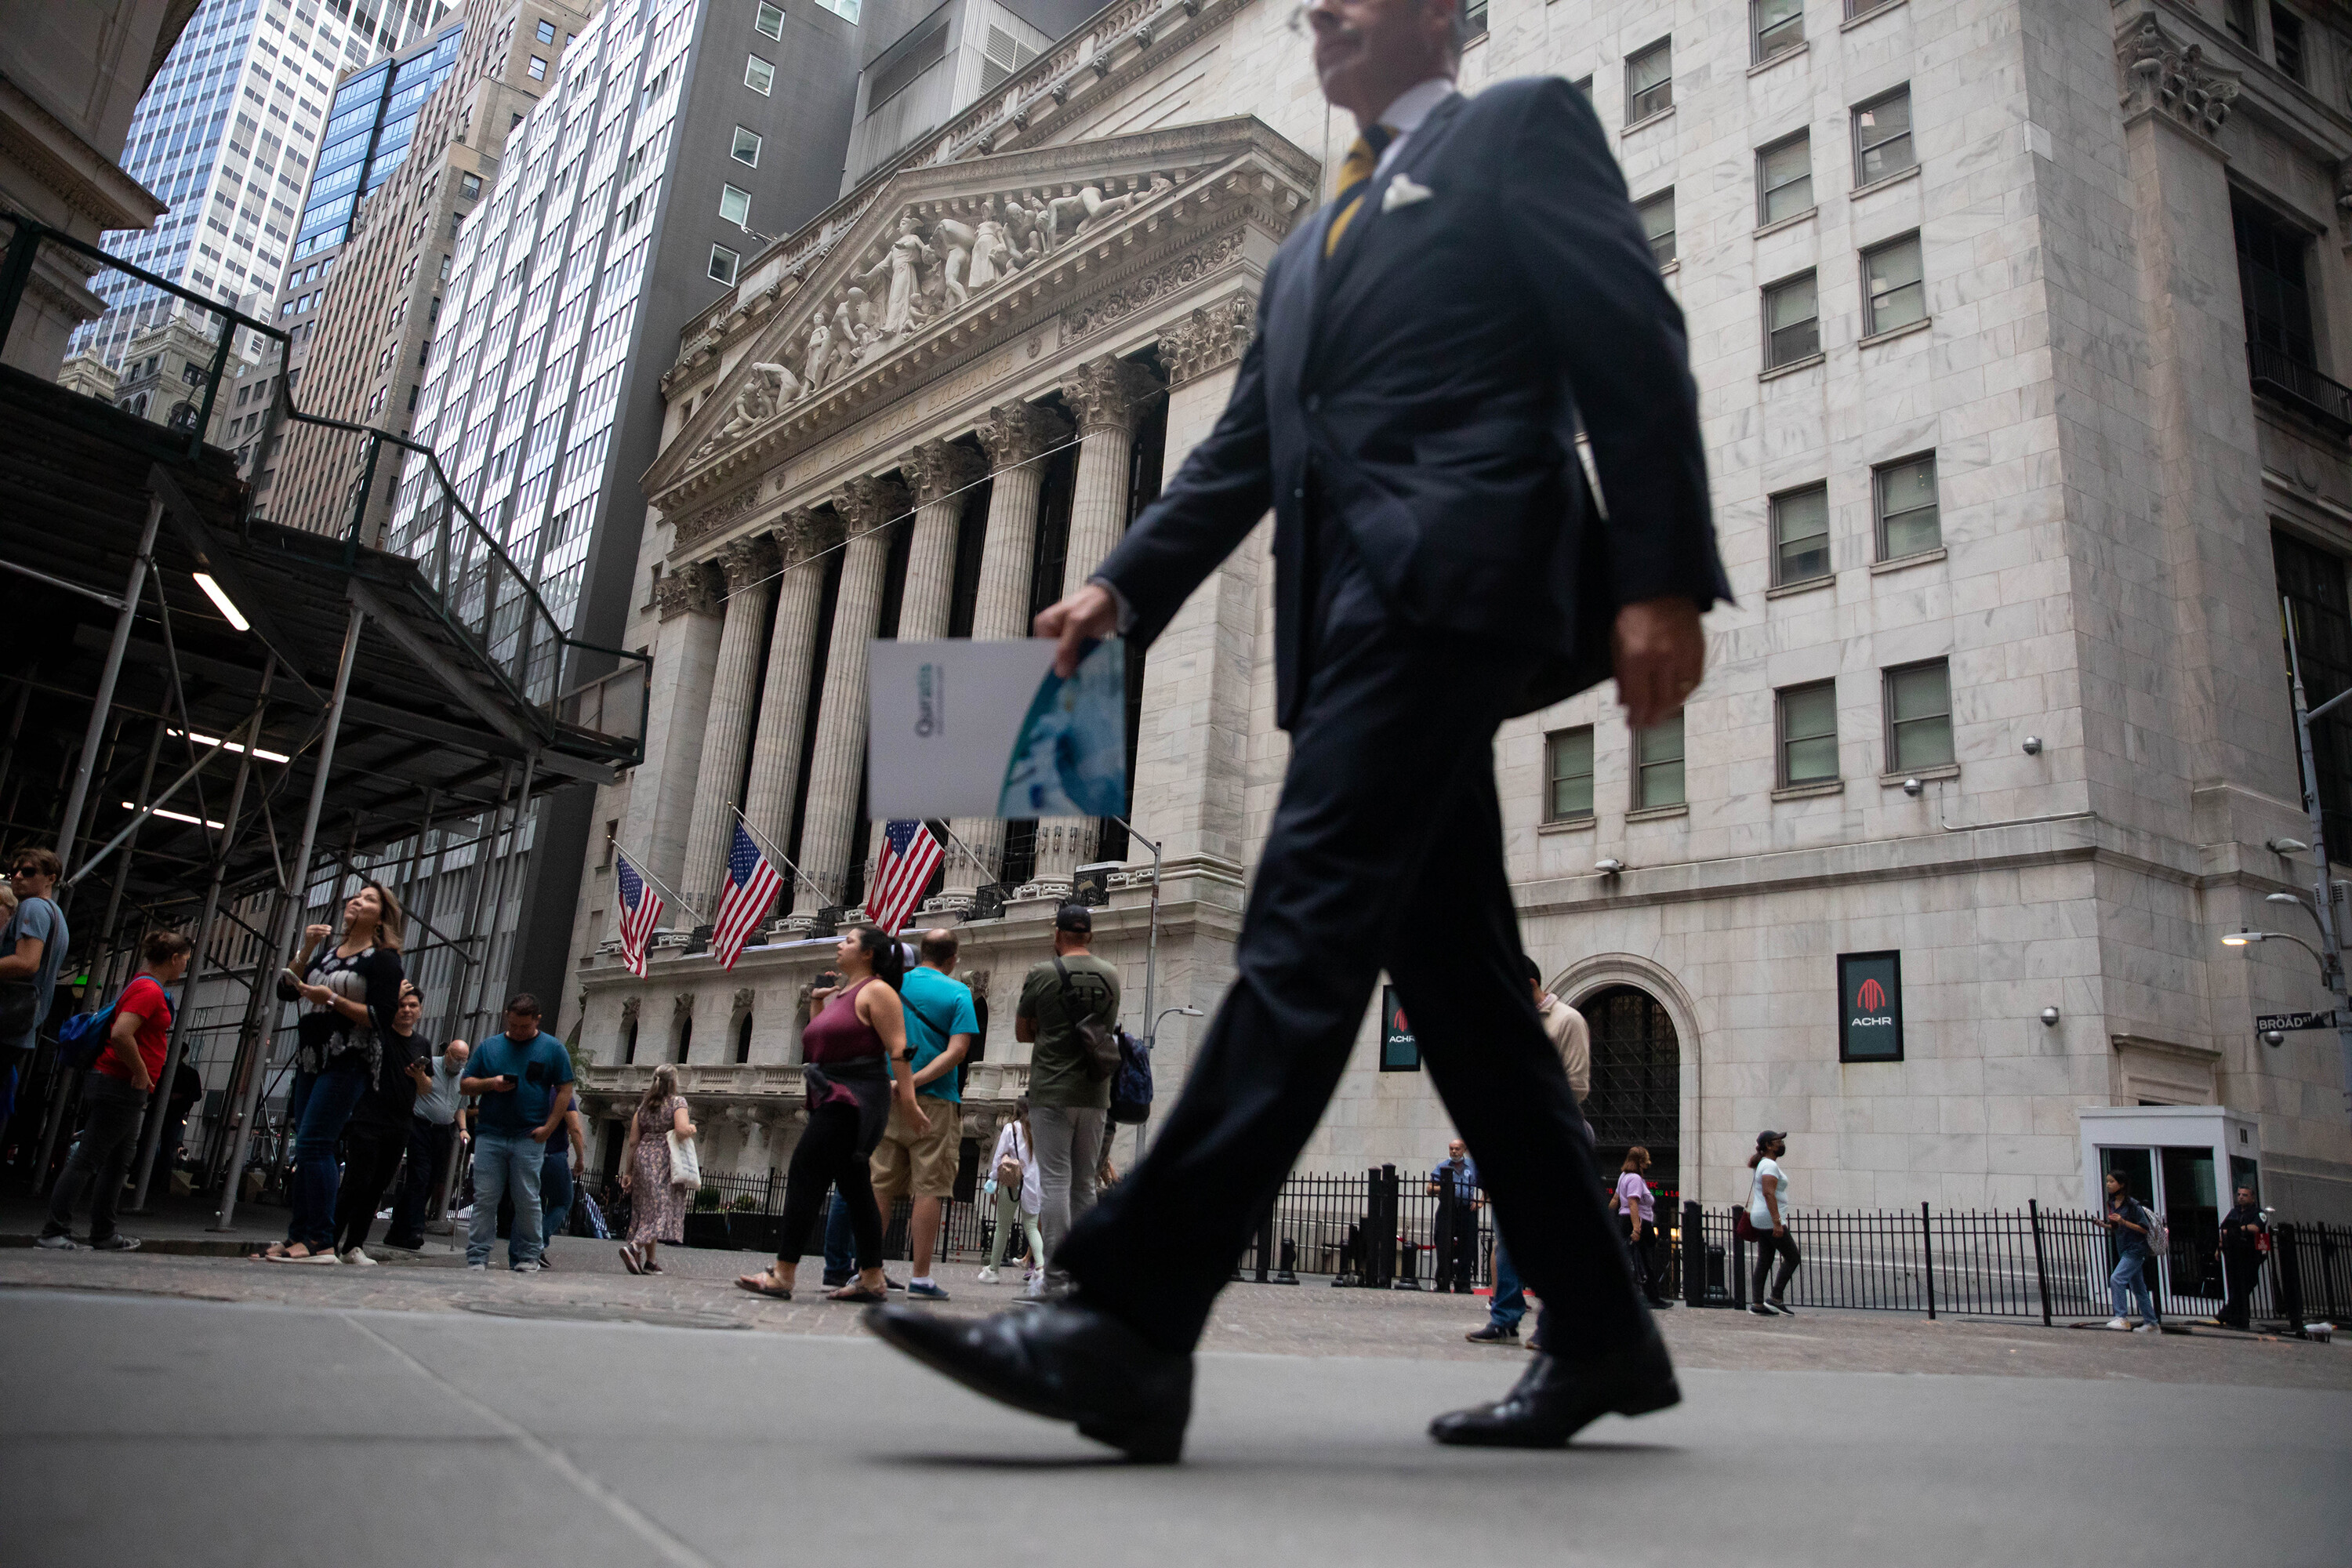 Wall Street's rebound attempt after worst losses in months falls flat